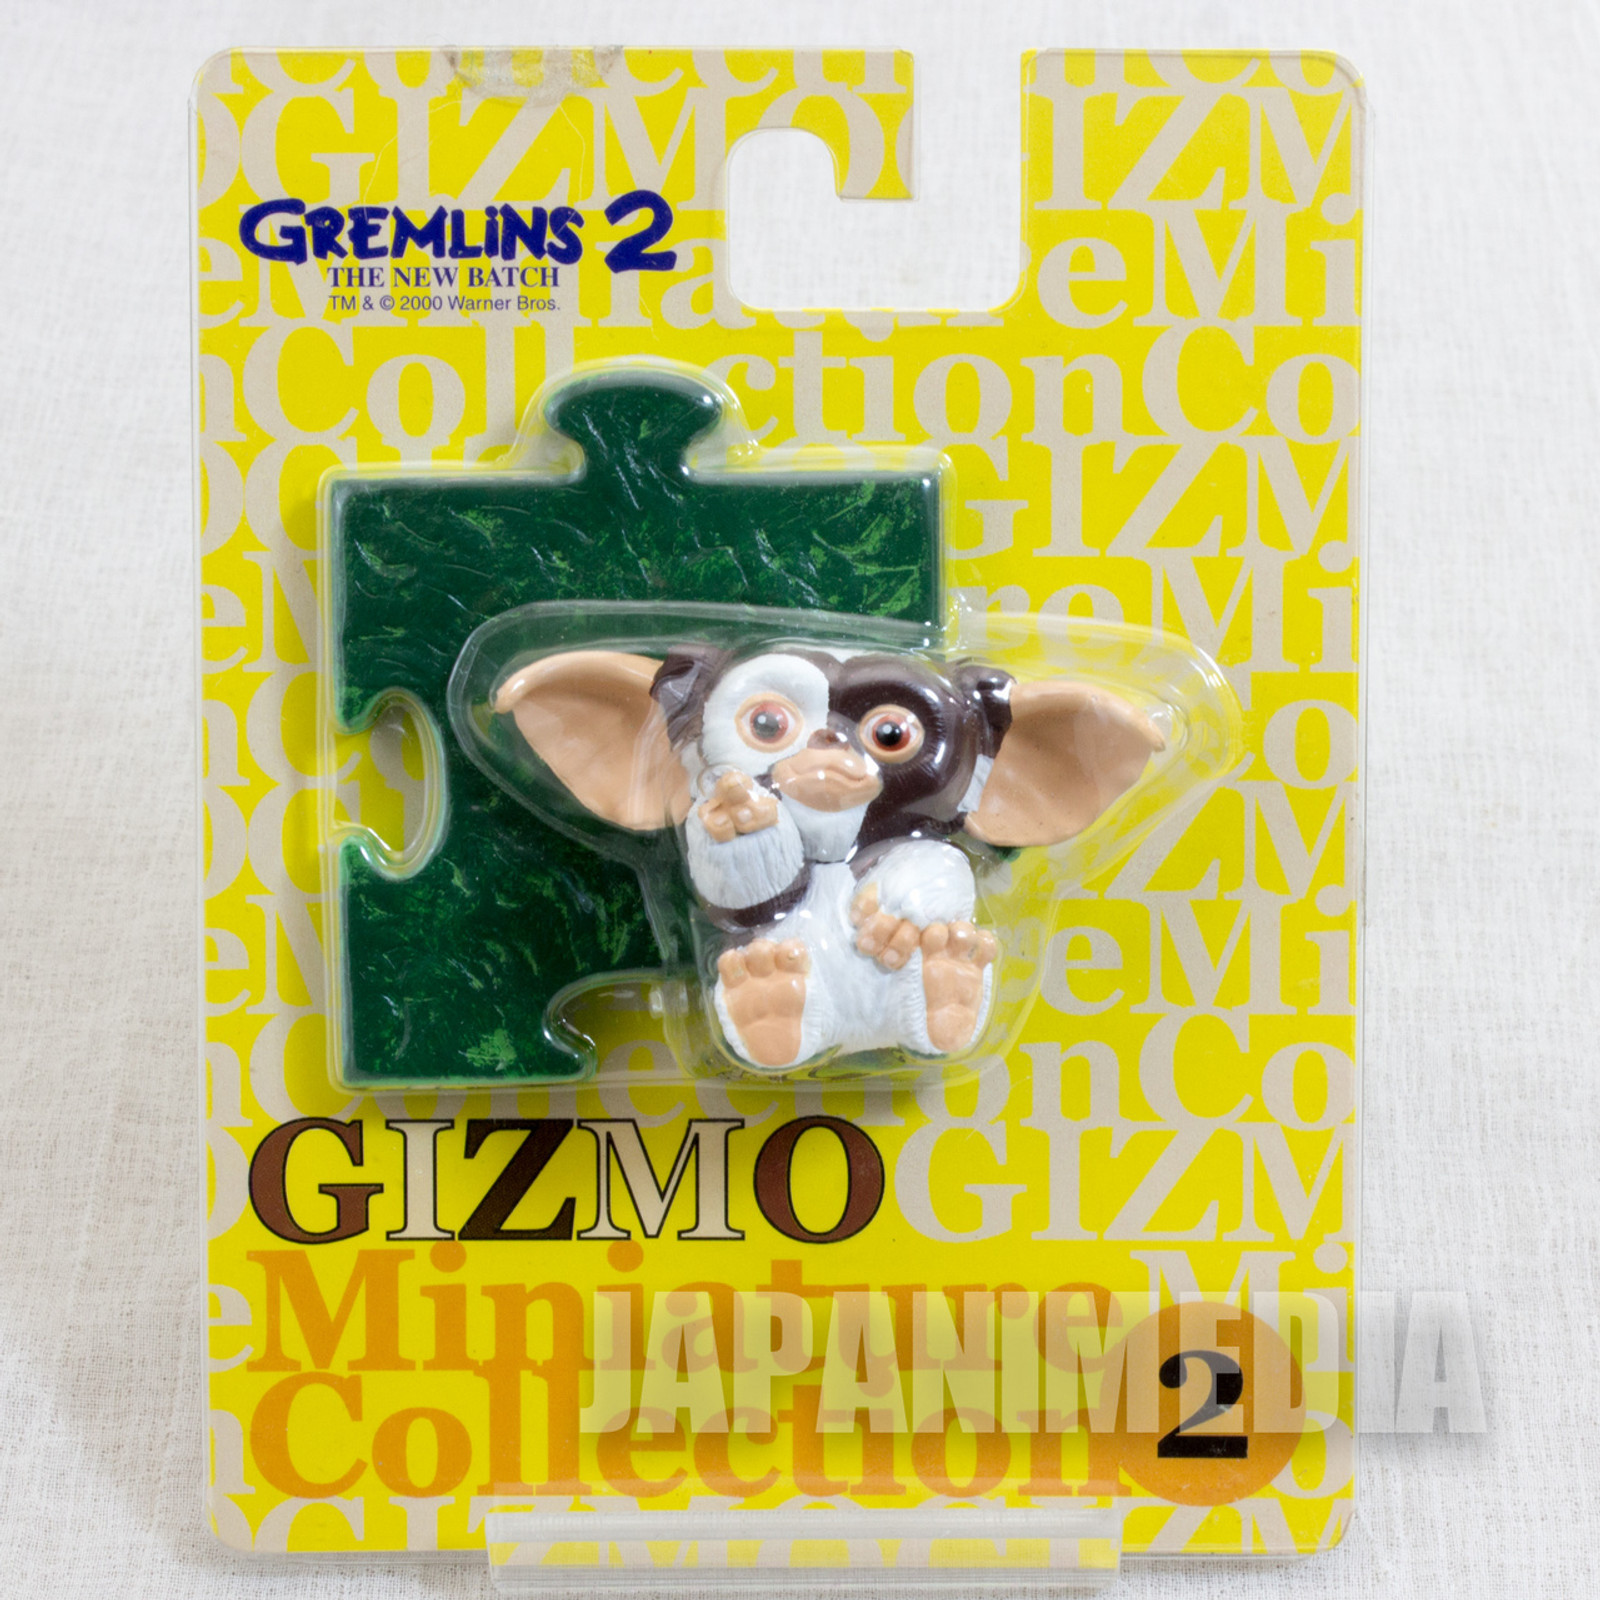 Gremlins 2 The New Batch Gizmo Miniature Figure Collection #2 Jun Planning JAPAN